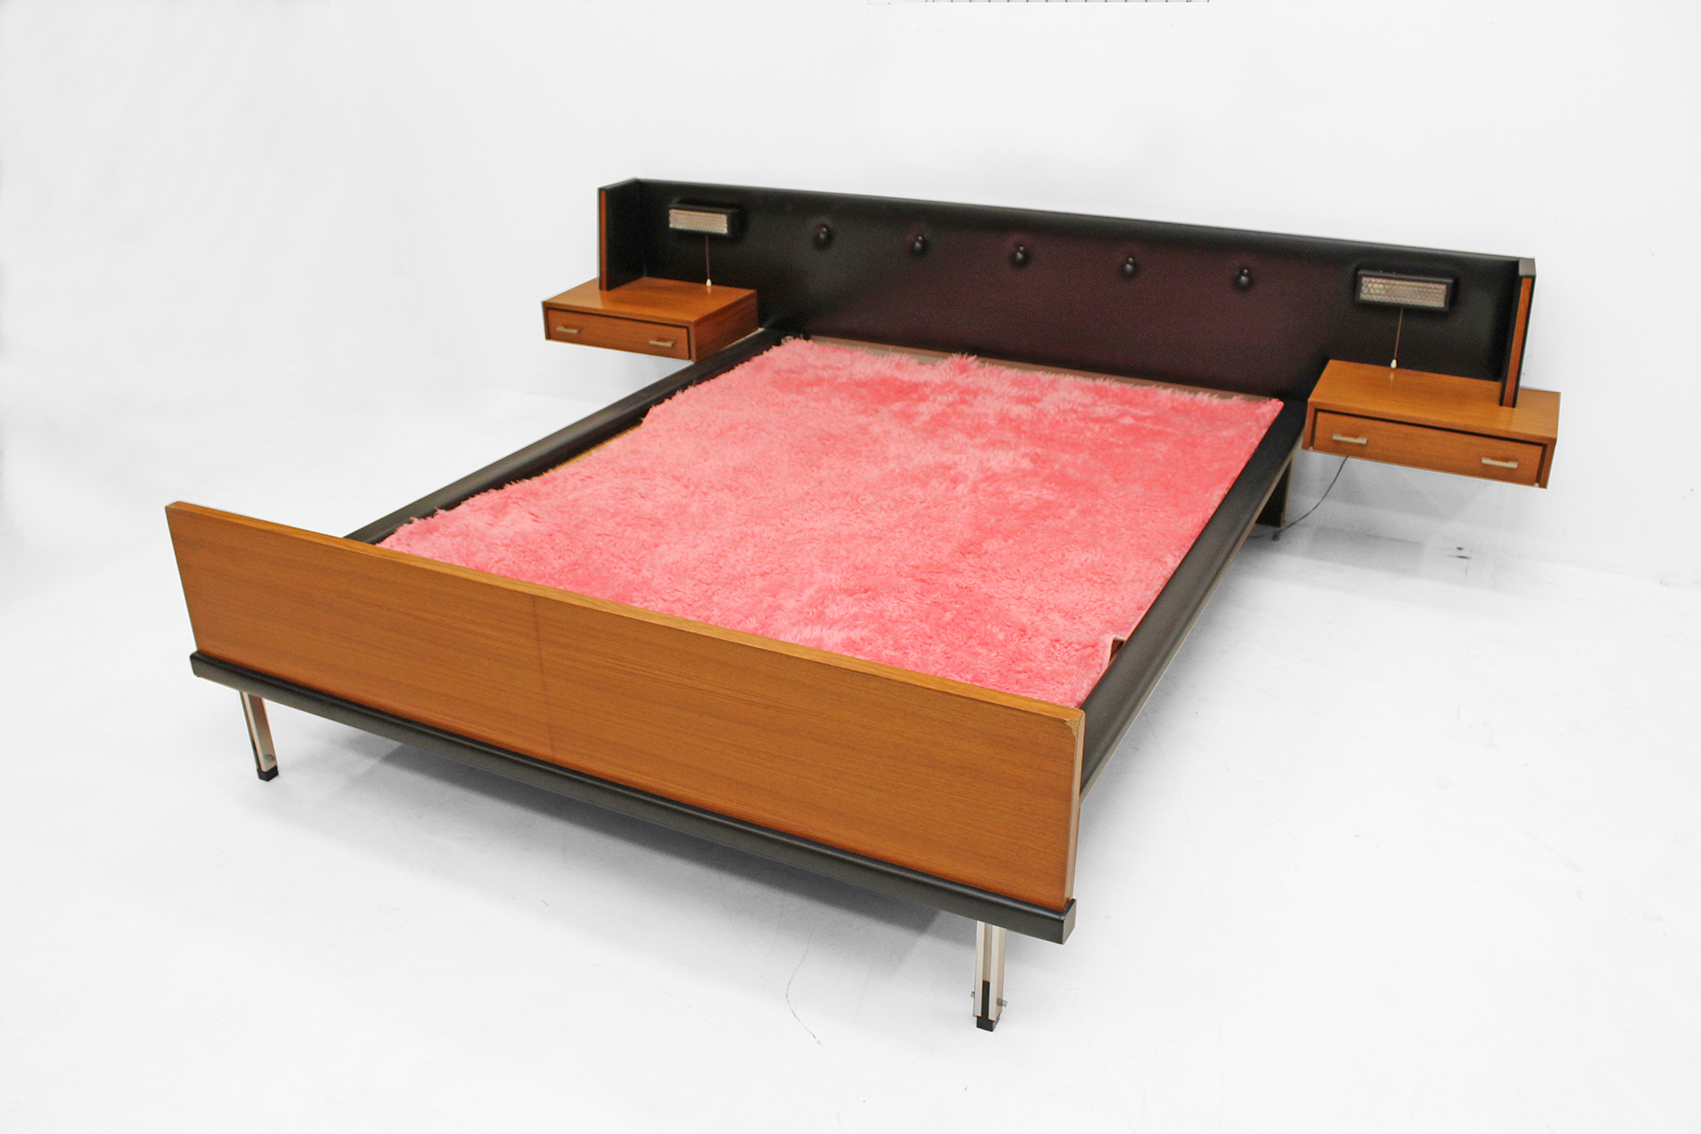 early seventies bed in teak with accents in skai